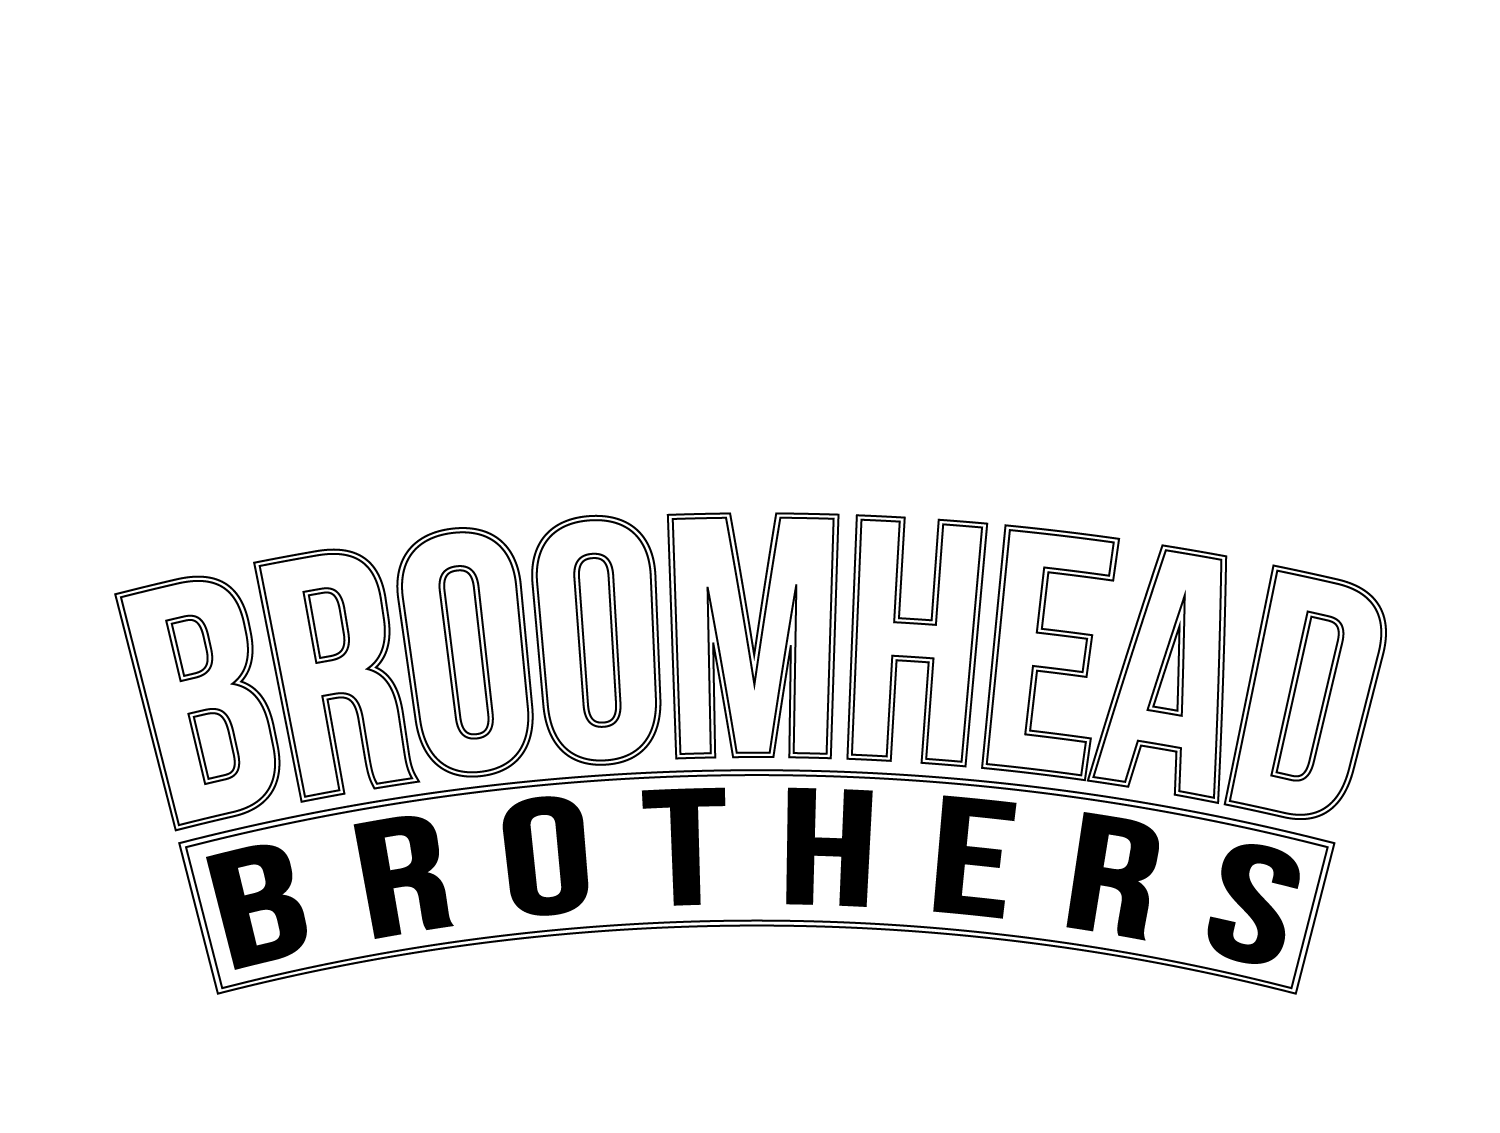 Broomhead Brothers